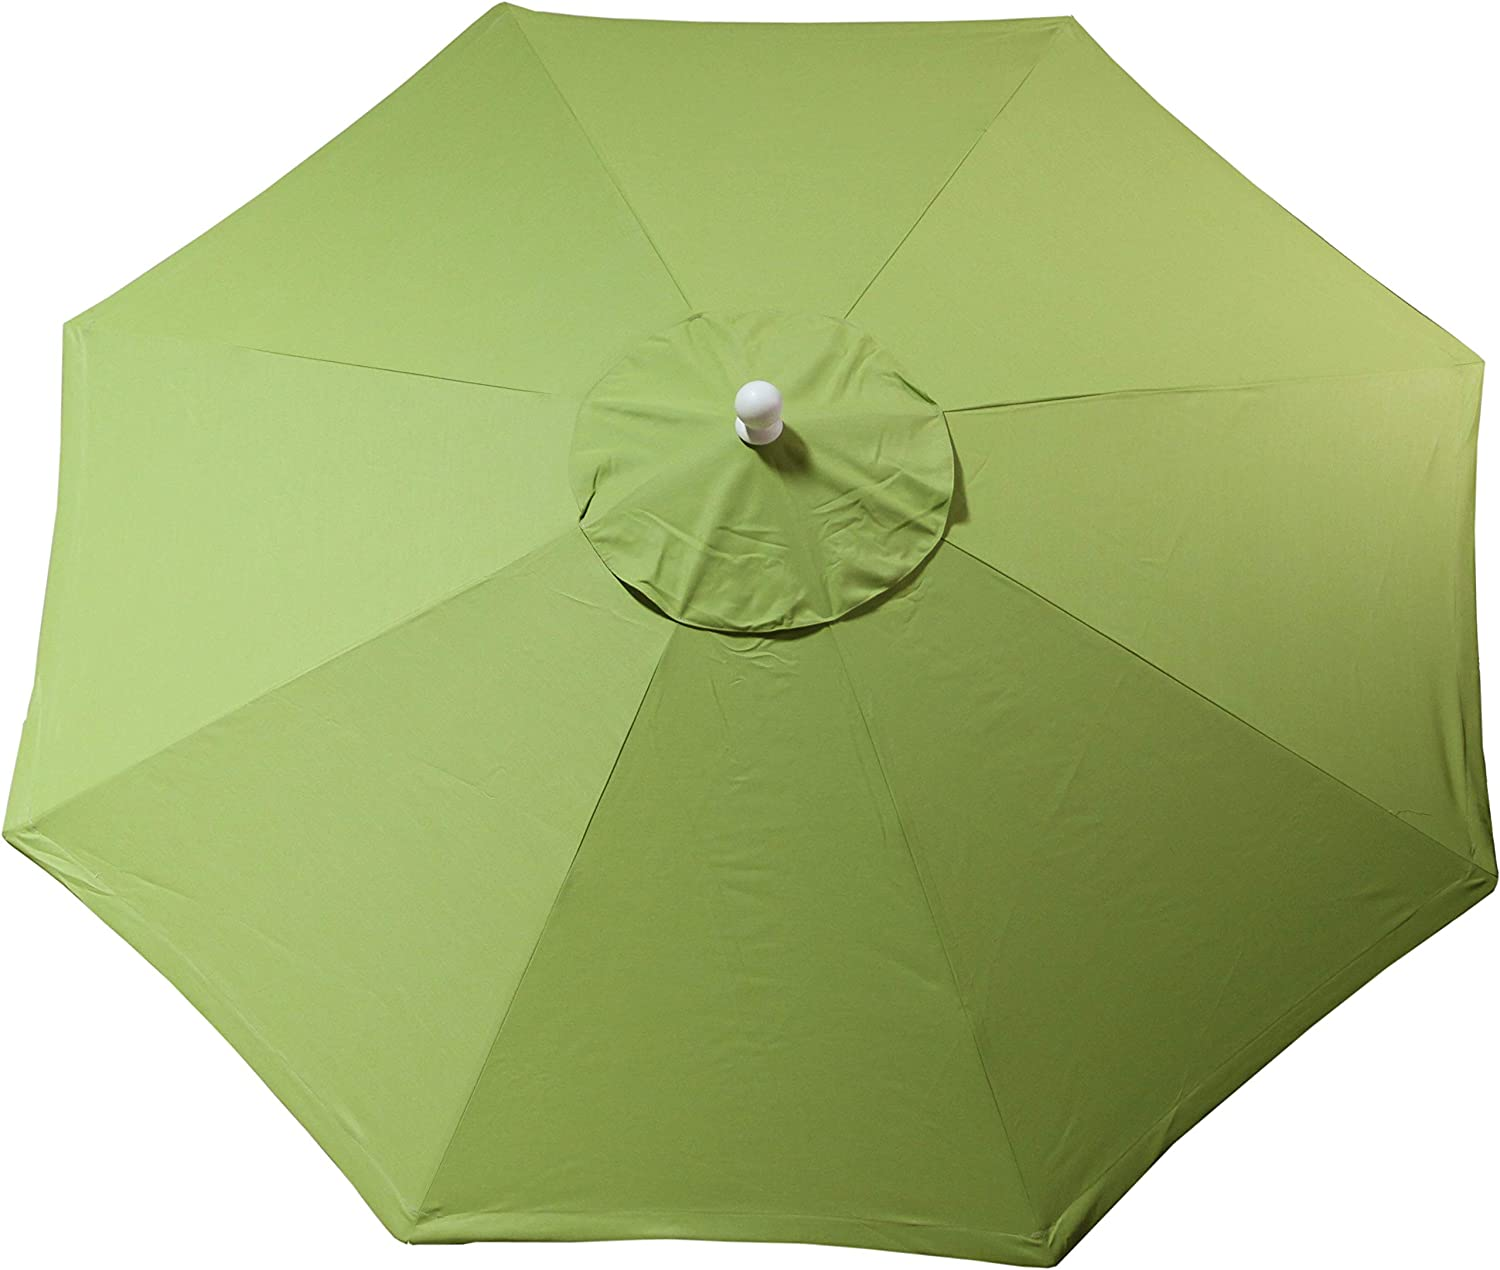 Amazon.com: LuxCraft Umbrella (Spectrum Dove): Kitchen & Dining